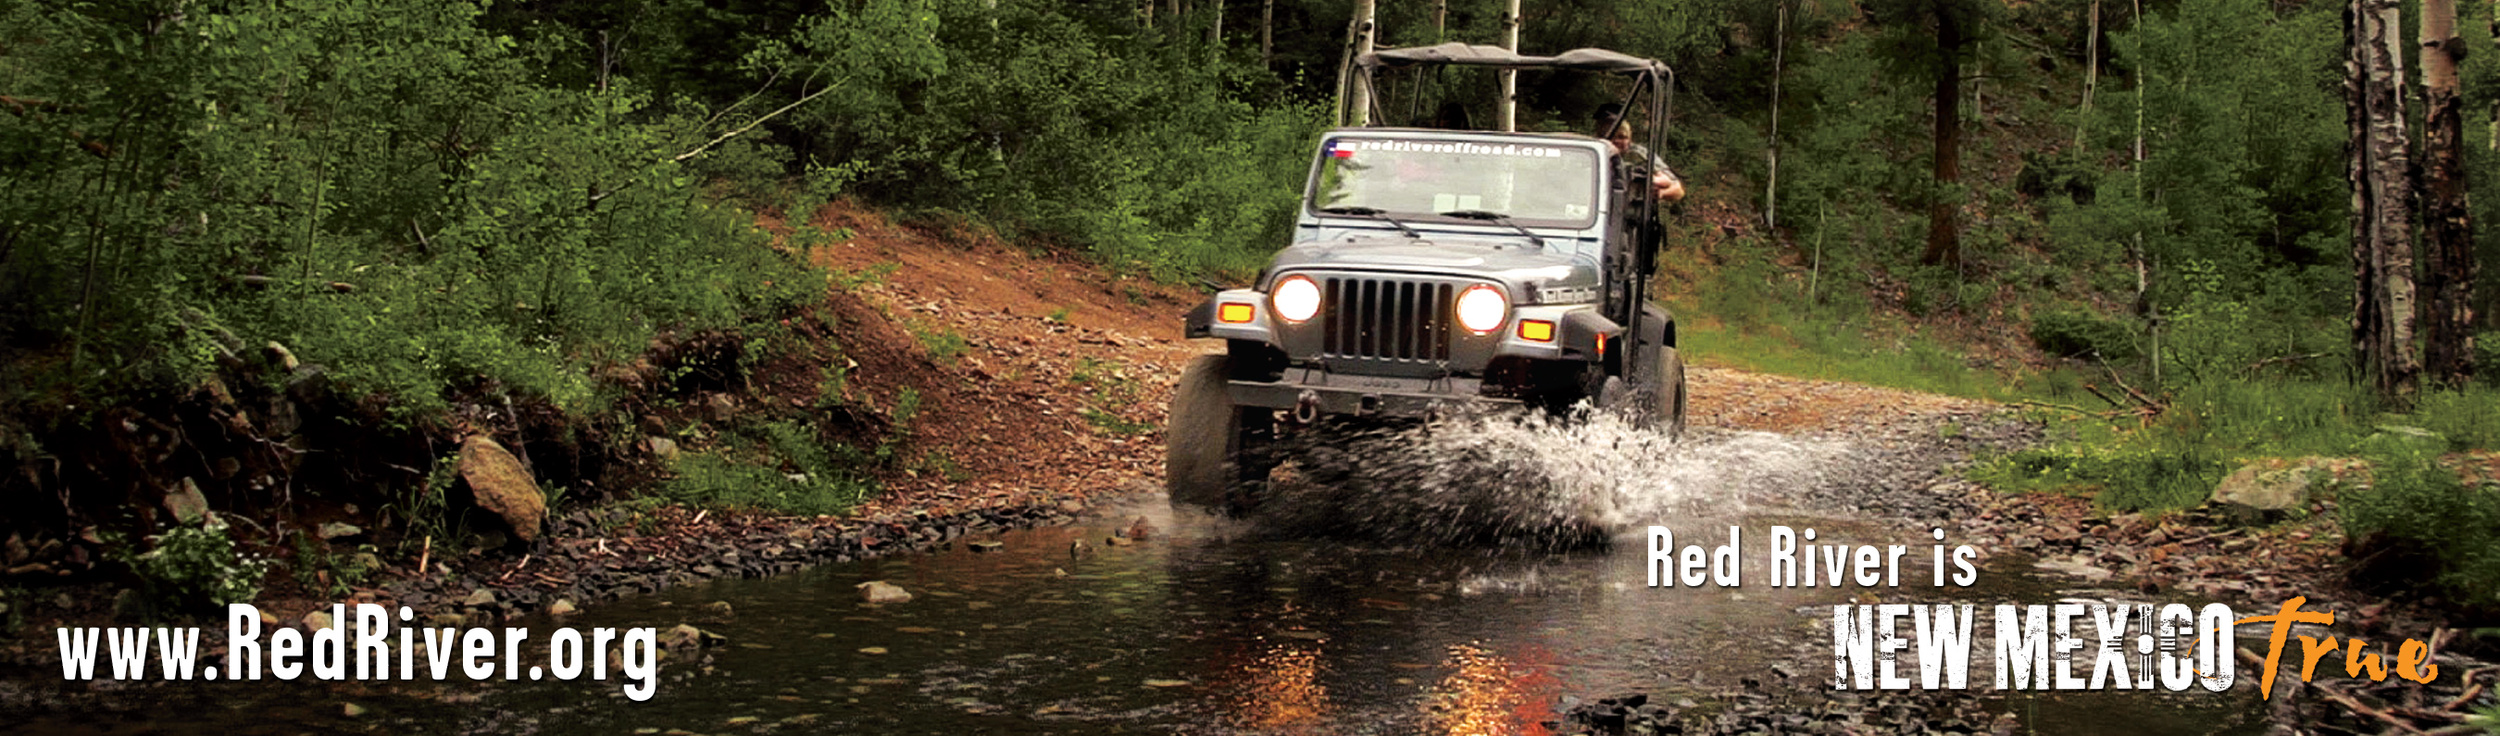 Showcasing the adventure of exploring on a cool mountain Jeep trail.